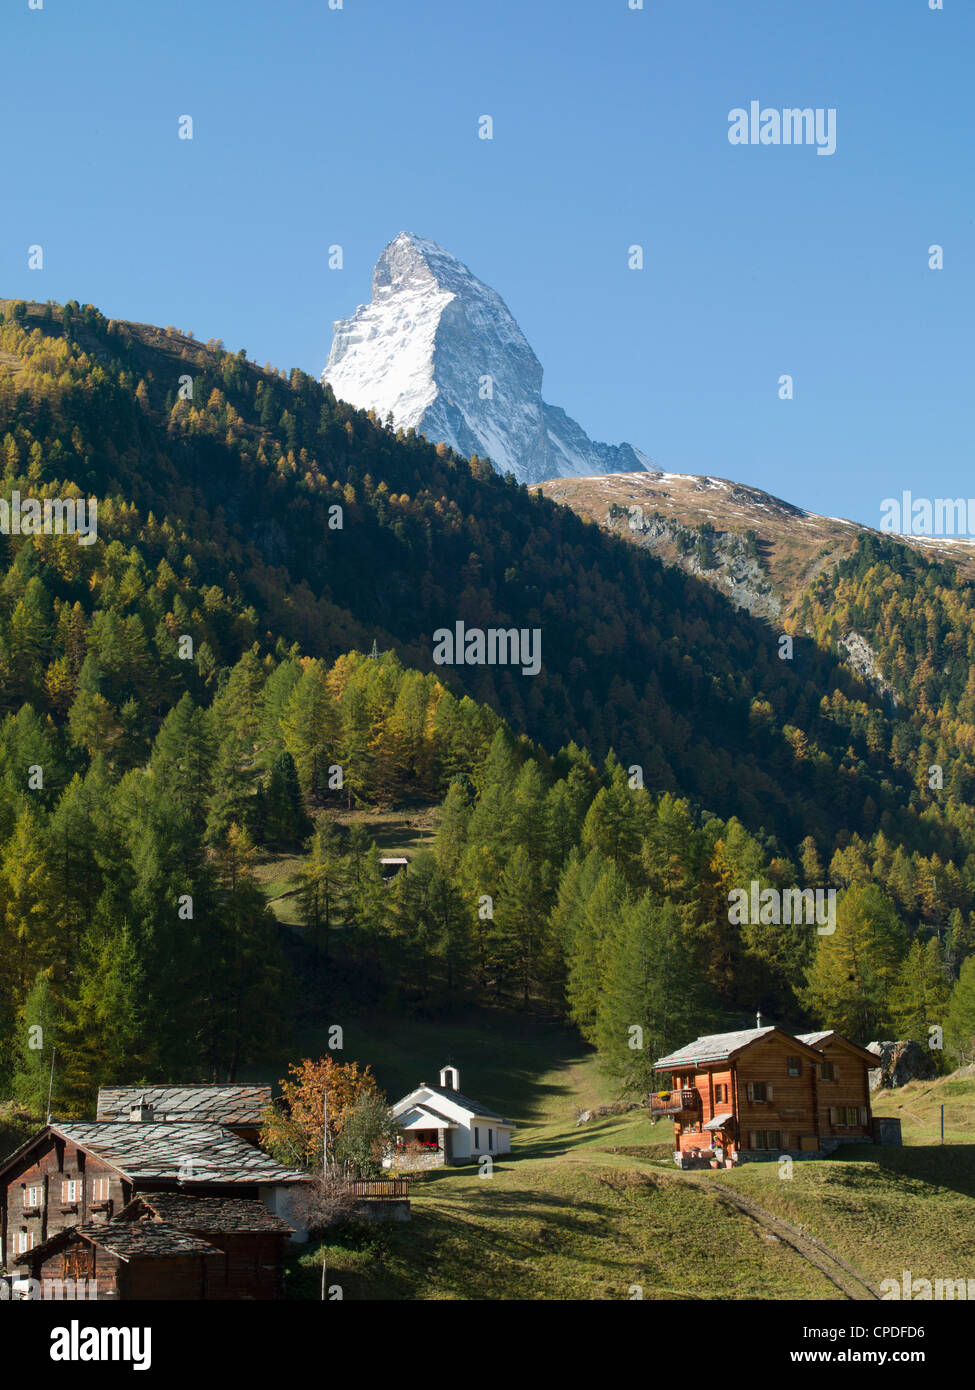 Matterhorn Zermatt Valais Swiss Alps Switzerland Europe Stock